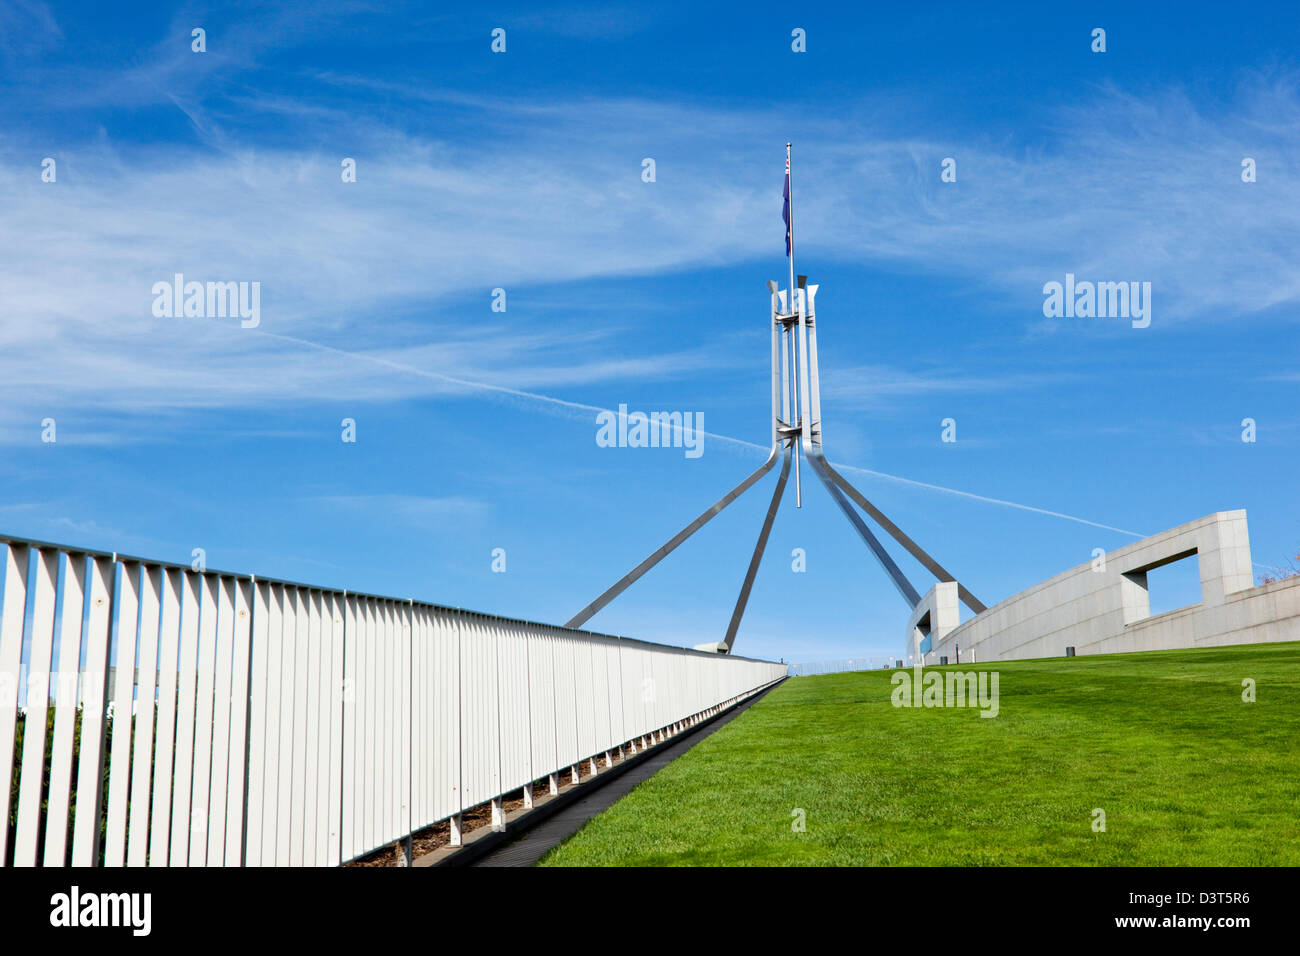 View of Parliament House flagpole from The rooftop lawn. Canberra, Australian Capital Territory (ACT), Australia - Stock Image